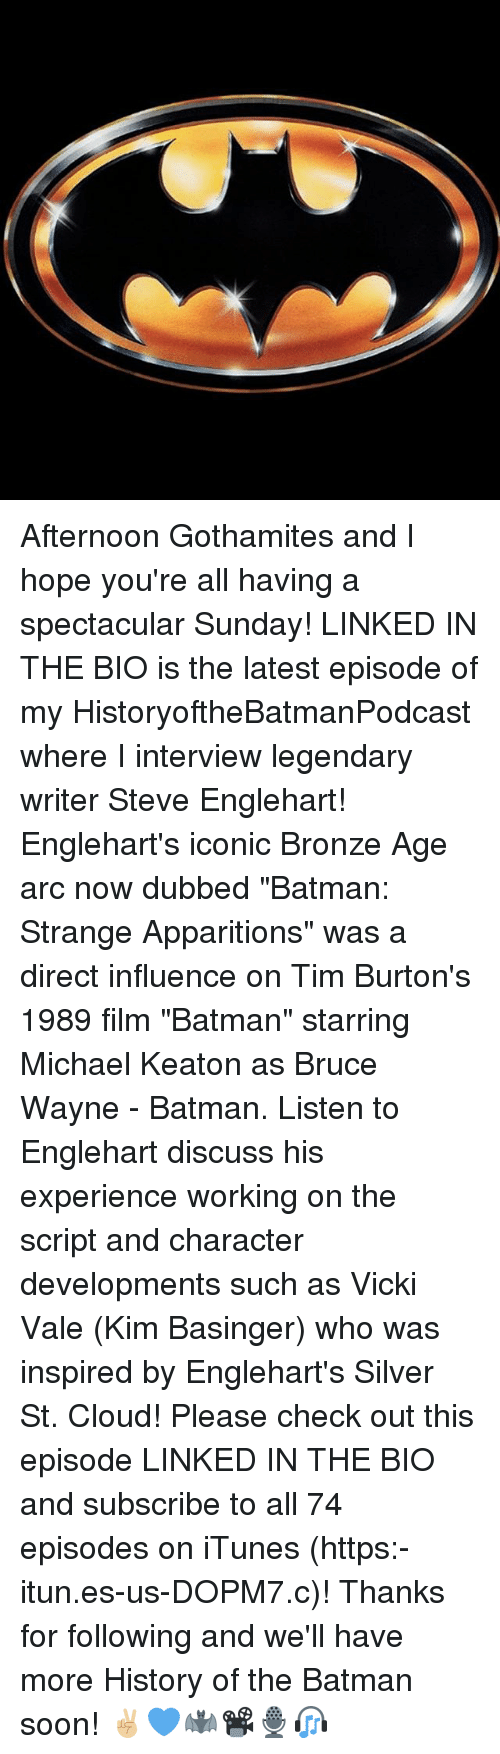 """Batman, Memes, and Soon...: Afternoon Gothamites and I hope you're all having a spectacular Sunday! LINKED IN THE BIO is the latest episode of my HistoryoftheBatmanPodcast where I interview legendary writer Steve Englehart! Englehart's iconic Bronze Age arc now dubbed """"Batman: Strange Apparitions"""" was a direct influence on Tim Burton's 1989 film """"Batman"""" starring Michael Keaton as Bruce Wayne - Batman. Listen to Englehart discuss his experience working on the script and character developments such as Vicki Vale (Kim Basinger) who was inspired by Englehart's Silver St. Cloud! Please check out this episode LINKED IN THE BIO and subscribe to all 74 episodes on iTunes (https:-itun.es-us-DOPM7.c)! Thanks for following and we'll have more History of the Batman soon! ✌🏼💙🦇📽🎙🎧"""